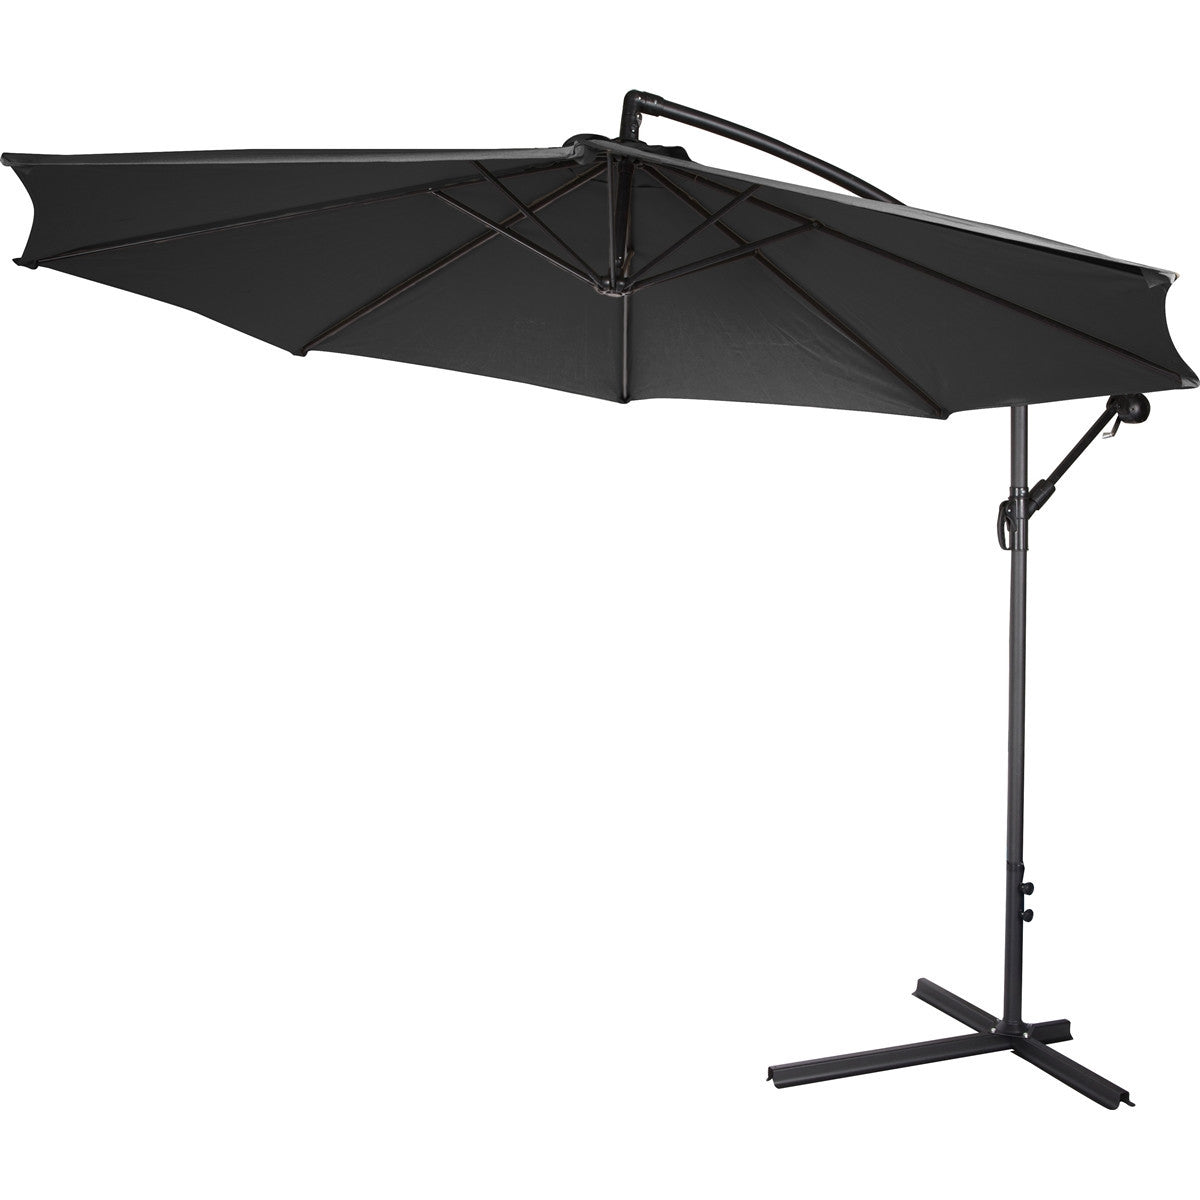 C & M Black Cantilever Hanging Patio Umbrella 10' - Clever and Modern Home and office furniture. Pet Furniture